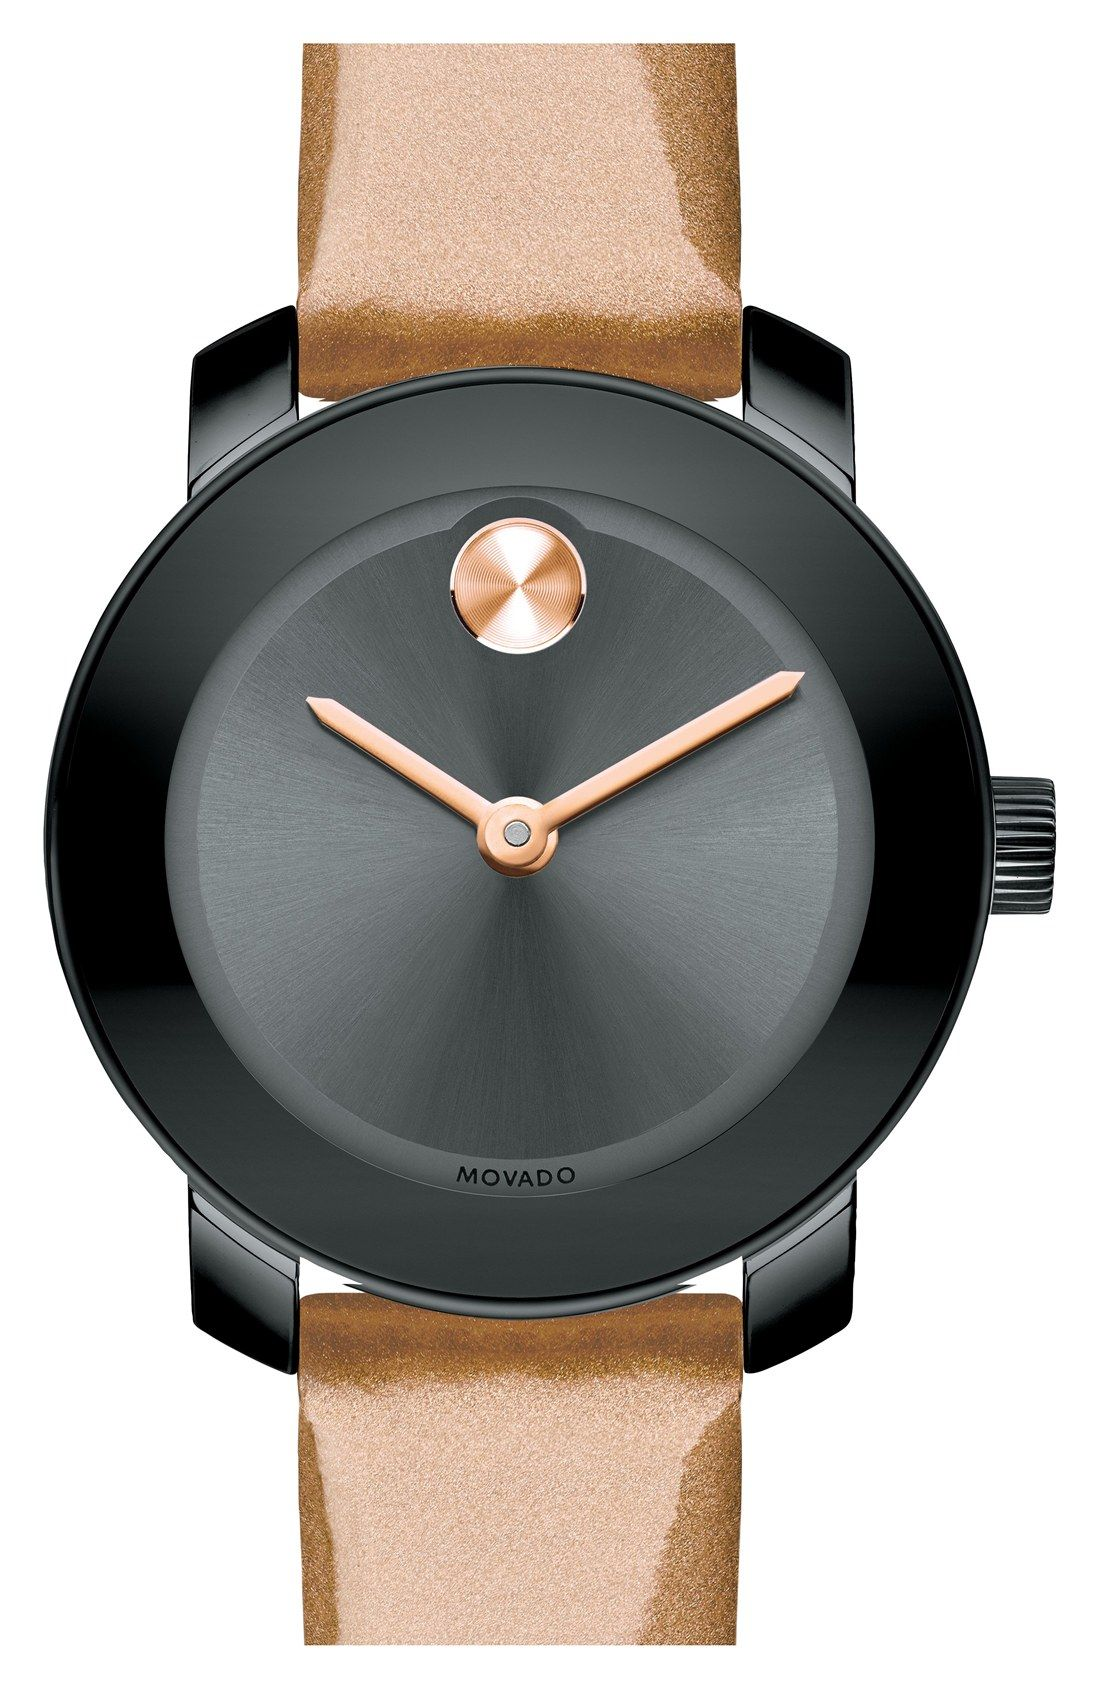 adeeff15dcd5 The color-rich patent-leather wristband confirms the modern-luxe look of  this sleek black and rose gold Movado watch.